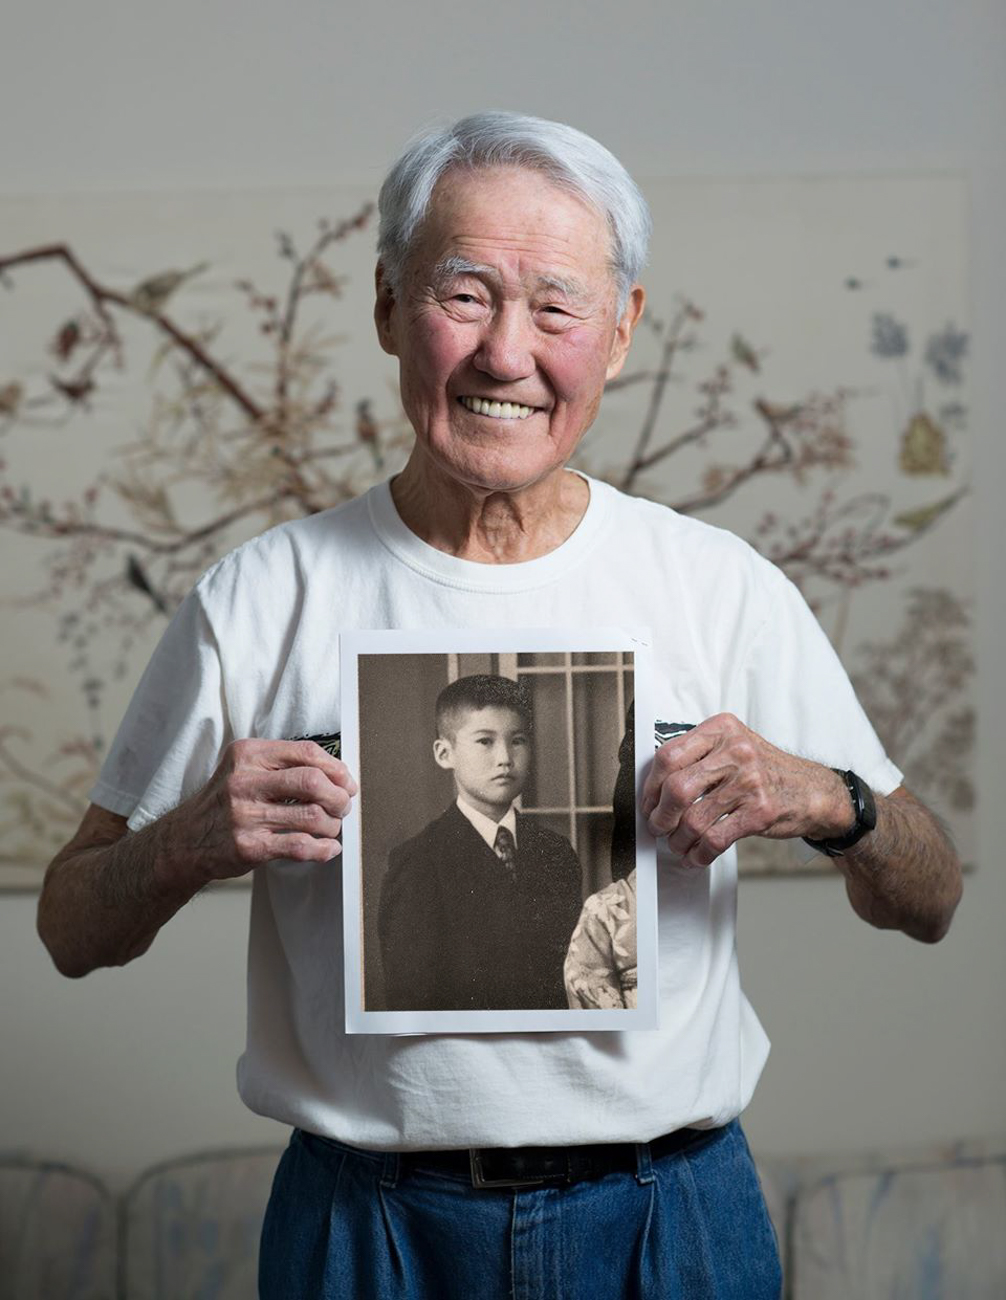 WALTER OKA / He witnessed the bloody attack on Pearl Harbor as a 13-year-old boy. / Read more of his story at facebook.com/theygaveitall. / Image: Patrick McCue // Published: 1.29.17